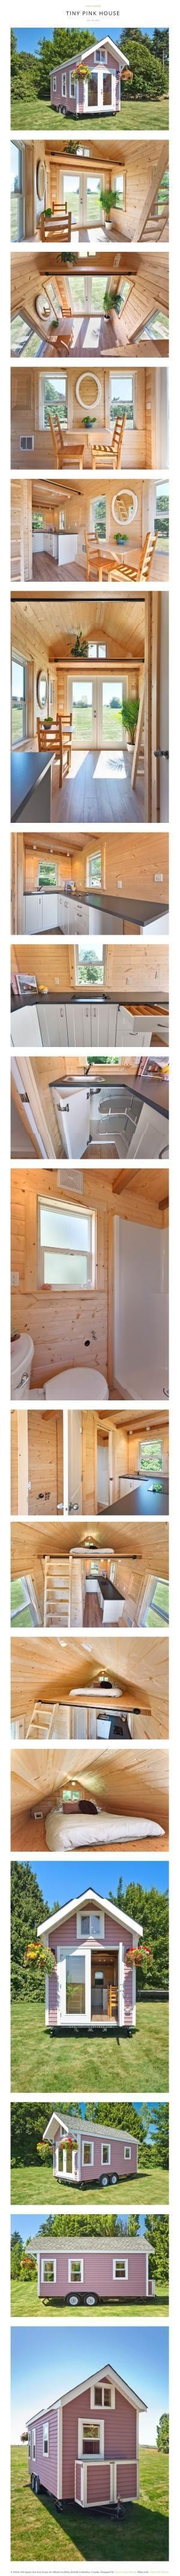 #tumbleweed #tinyhouses #tinyhome #tinyhouseplans TINY PINK HOUSE via TINY HOUSE SWOON... tinyhouseswoon.com/tiny-pink-house — A lofted 160 square feet tiny house on wheels in Delta, British Columbia, Canada.... Designed by Tiny Living Homes.... twitter.com/... More info. Tiny Pink House - tinyhousel by chrystal #tinyhouseinfo #tinyhomeonwheels